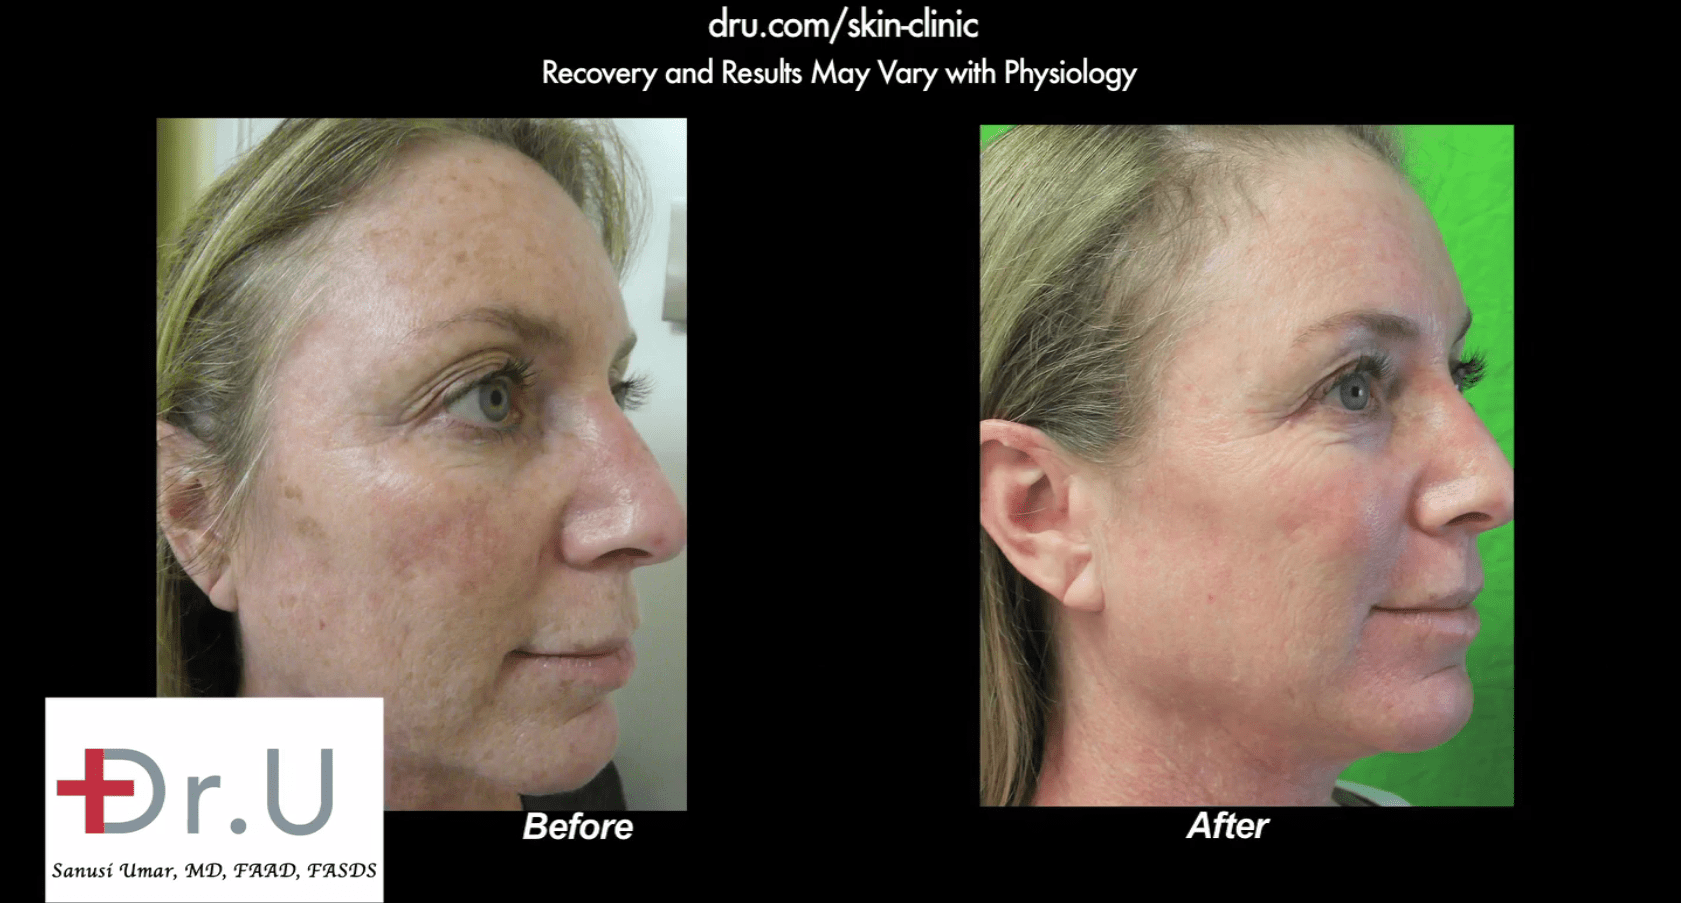 Spectra laser before and after only one session results in dramatic improvement.*